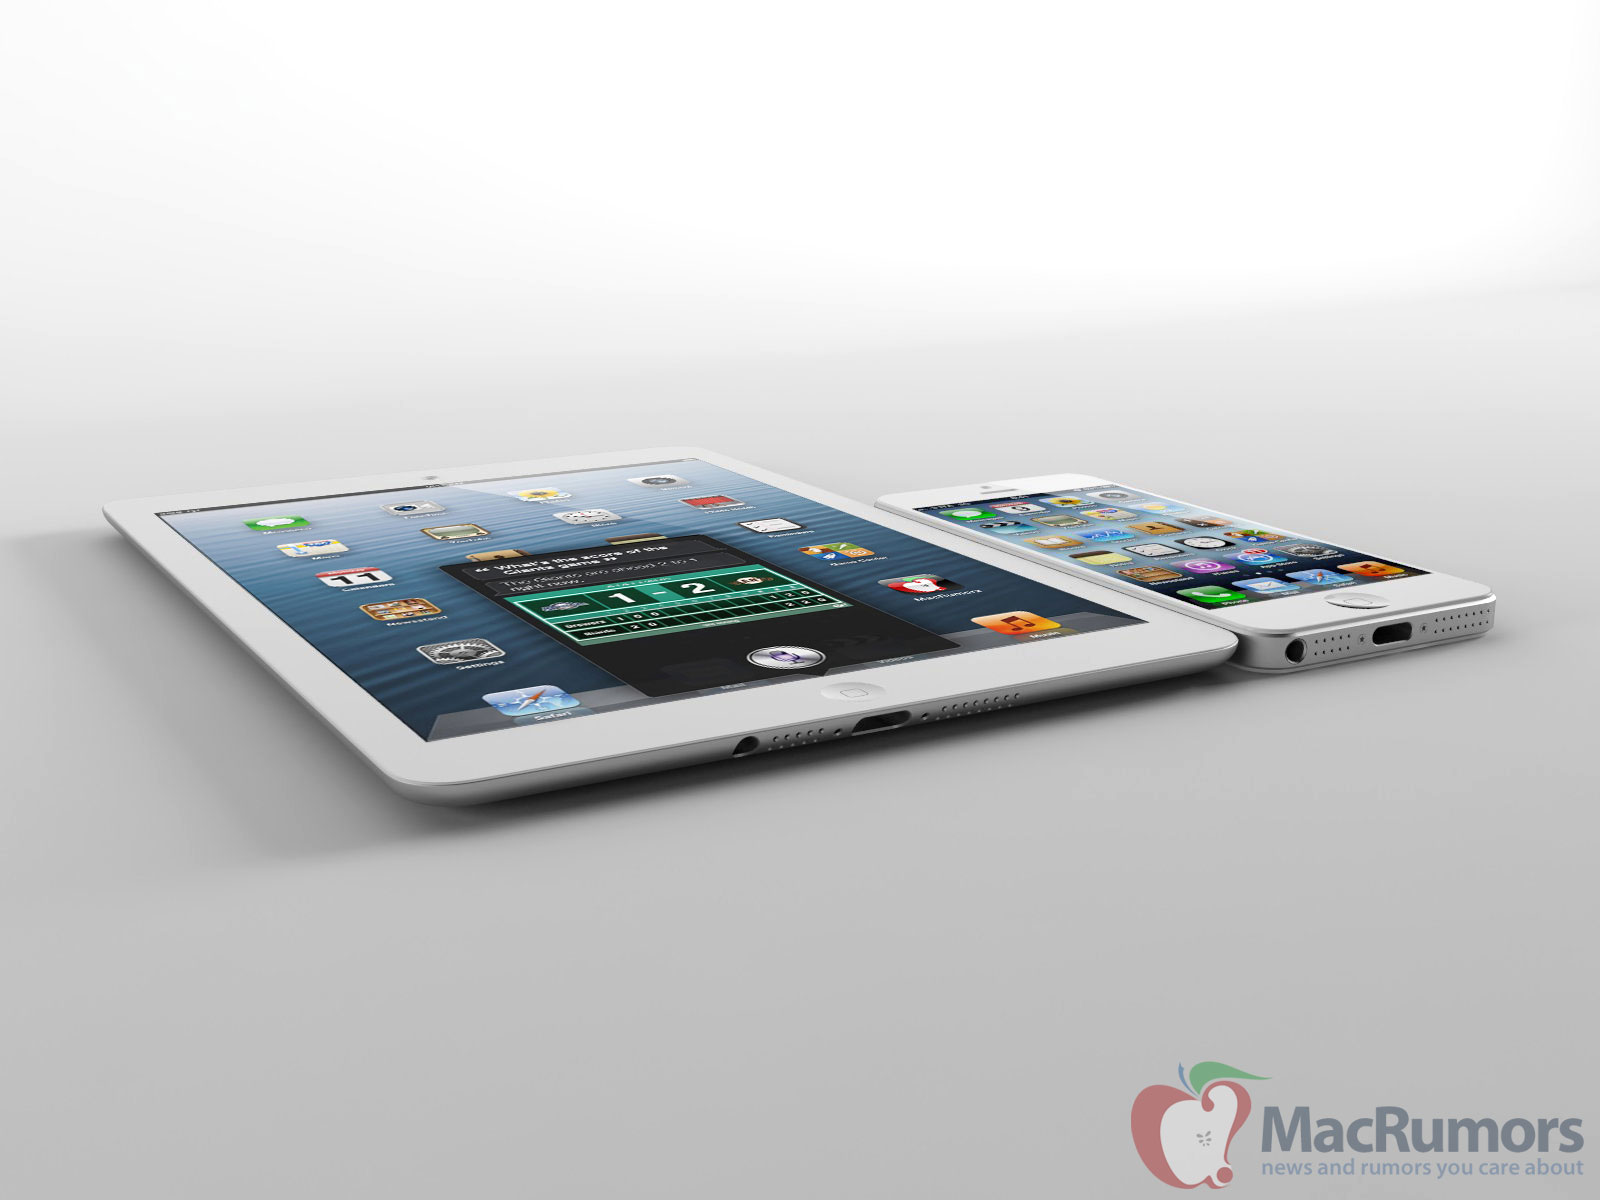 High Resolution And 3D Interactive Mockup Of Apple's